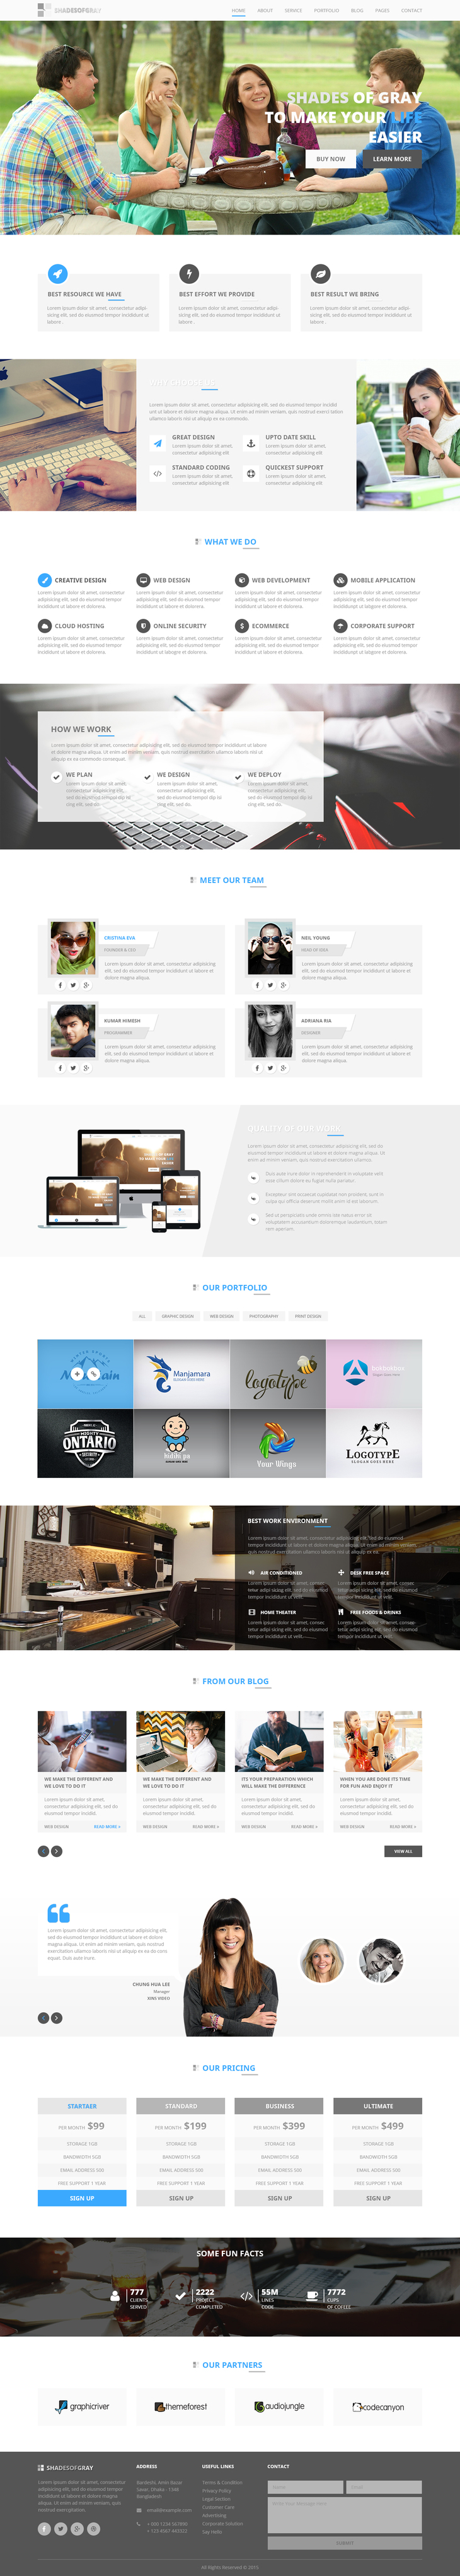 website templates psd free download